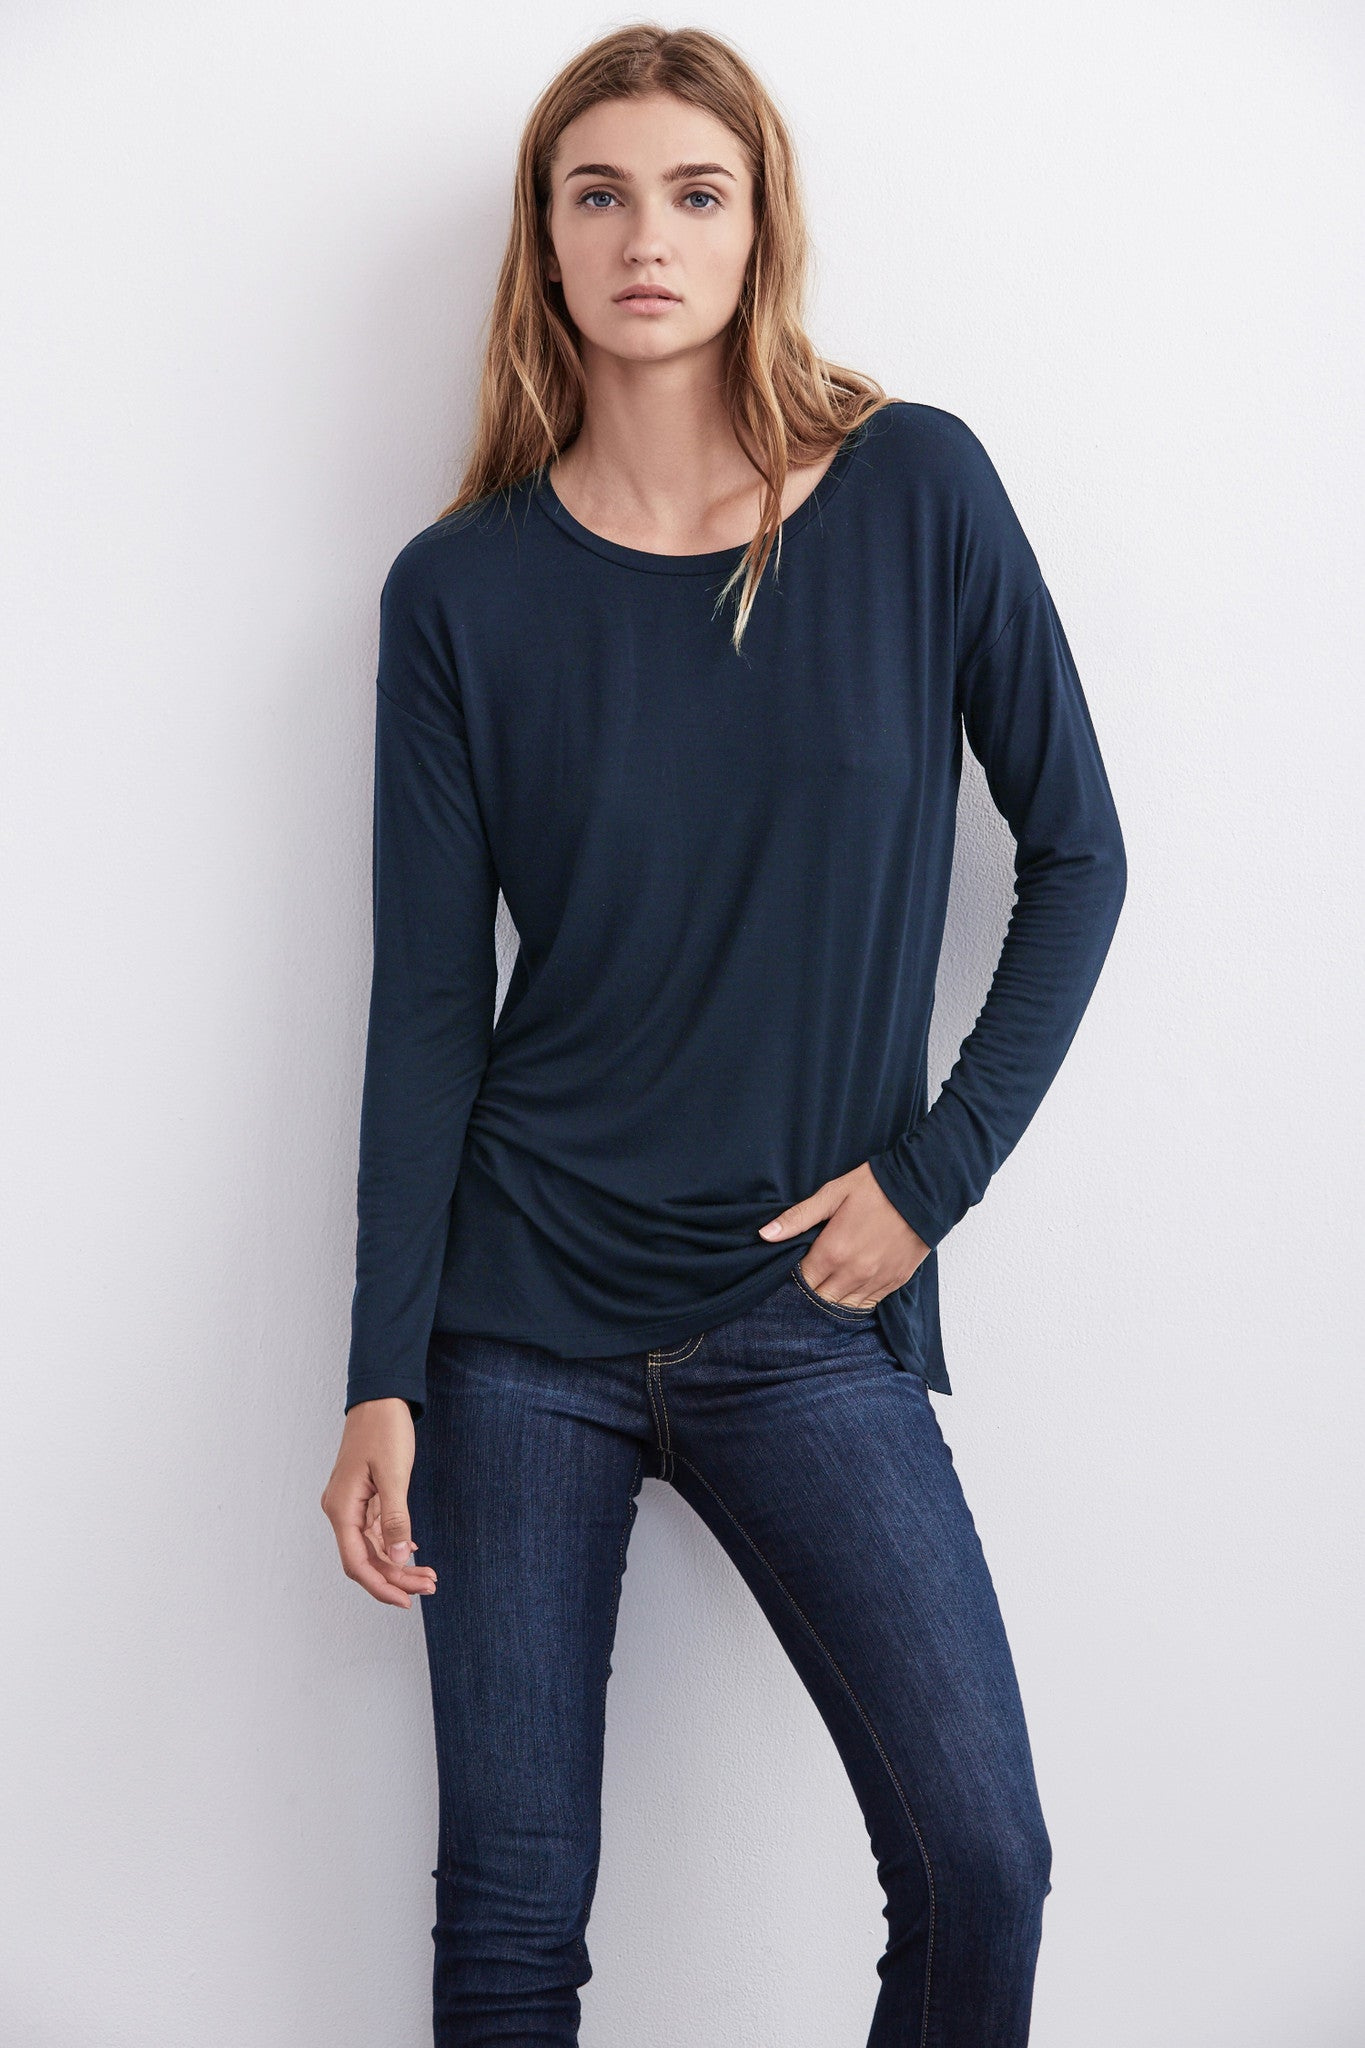 ALEXANDRA SPLIT SEAM TOP IN NAVY